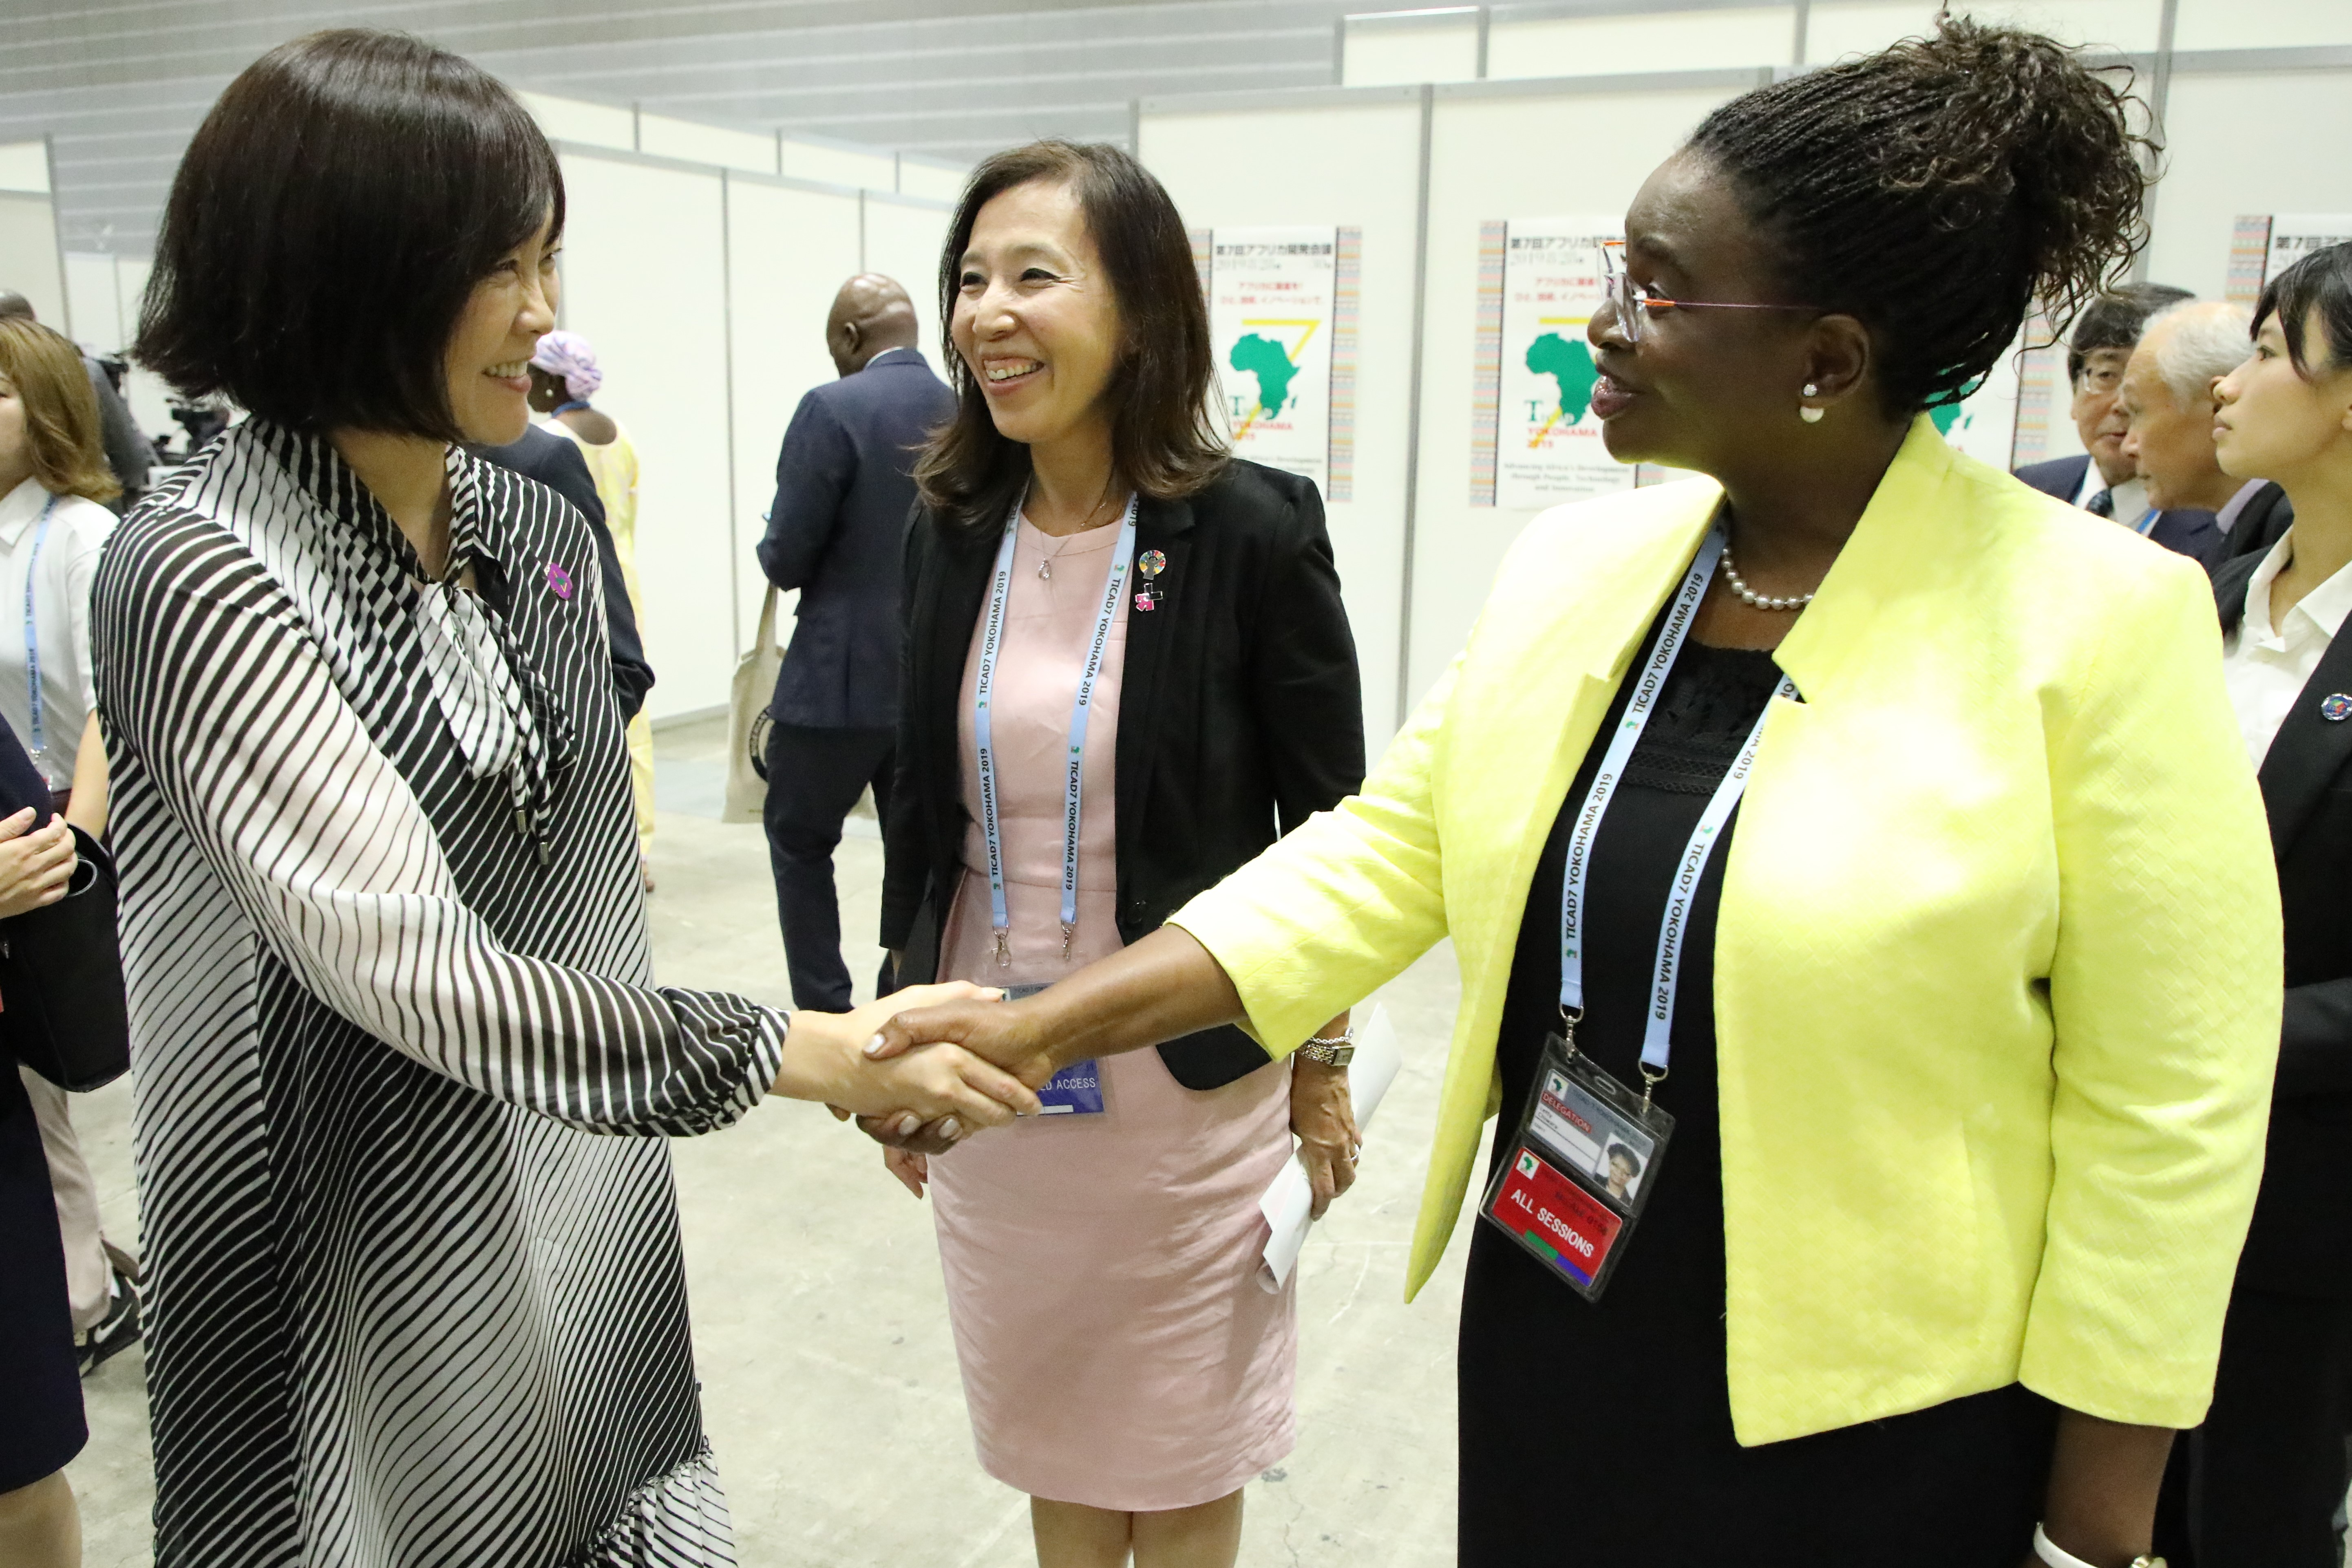 First Lady of Japan visits UN Women's booth at the exhibition hall where she is welcomed by Kae Ishikawa, Director of UN Women Japan Liaison Office, and Letty Chiwara, UN Women Representative to Ethiopia, Africa Union and UNECA.